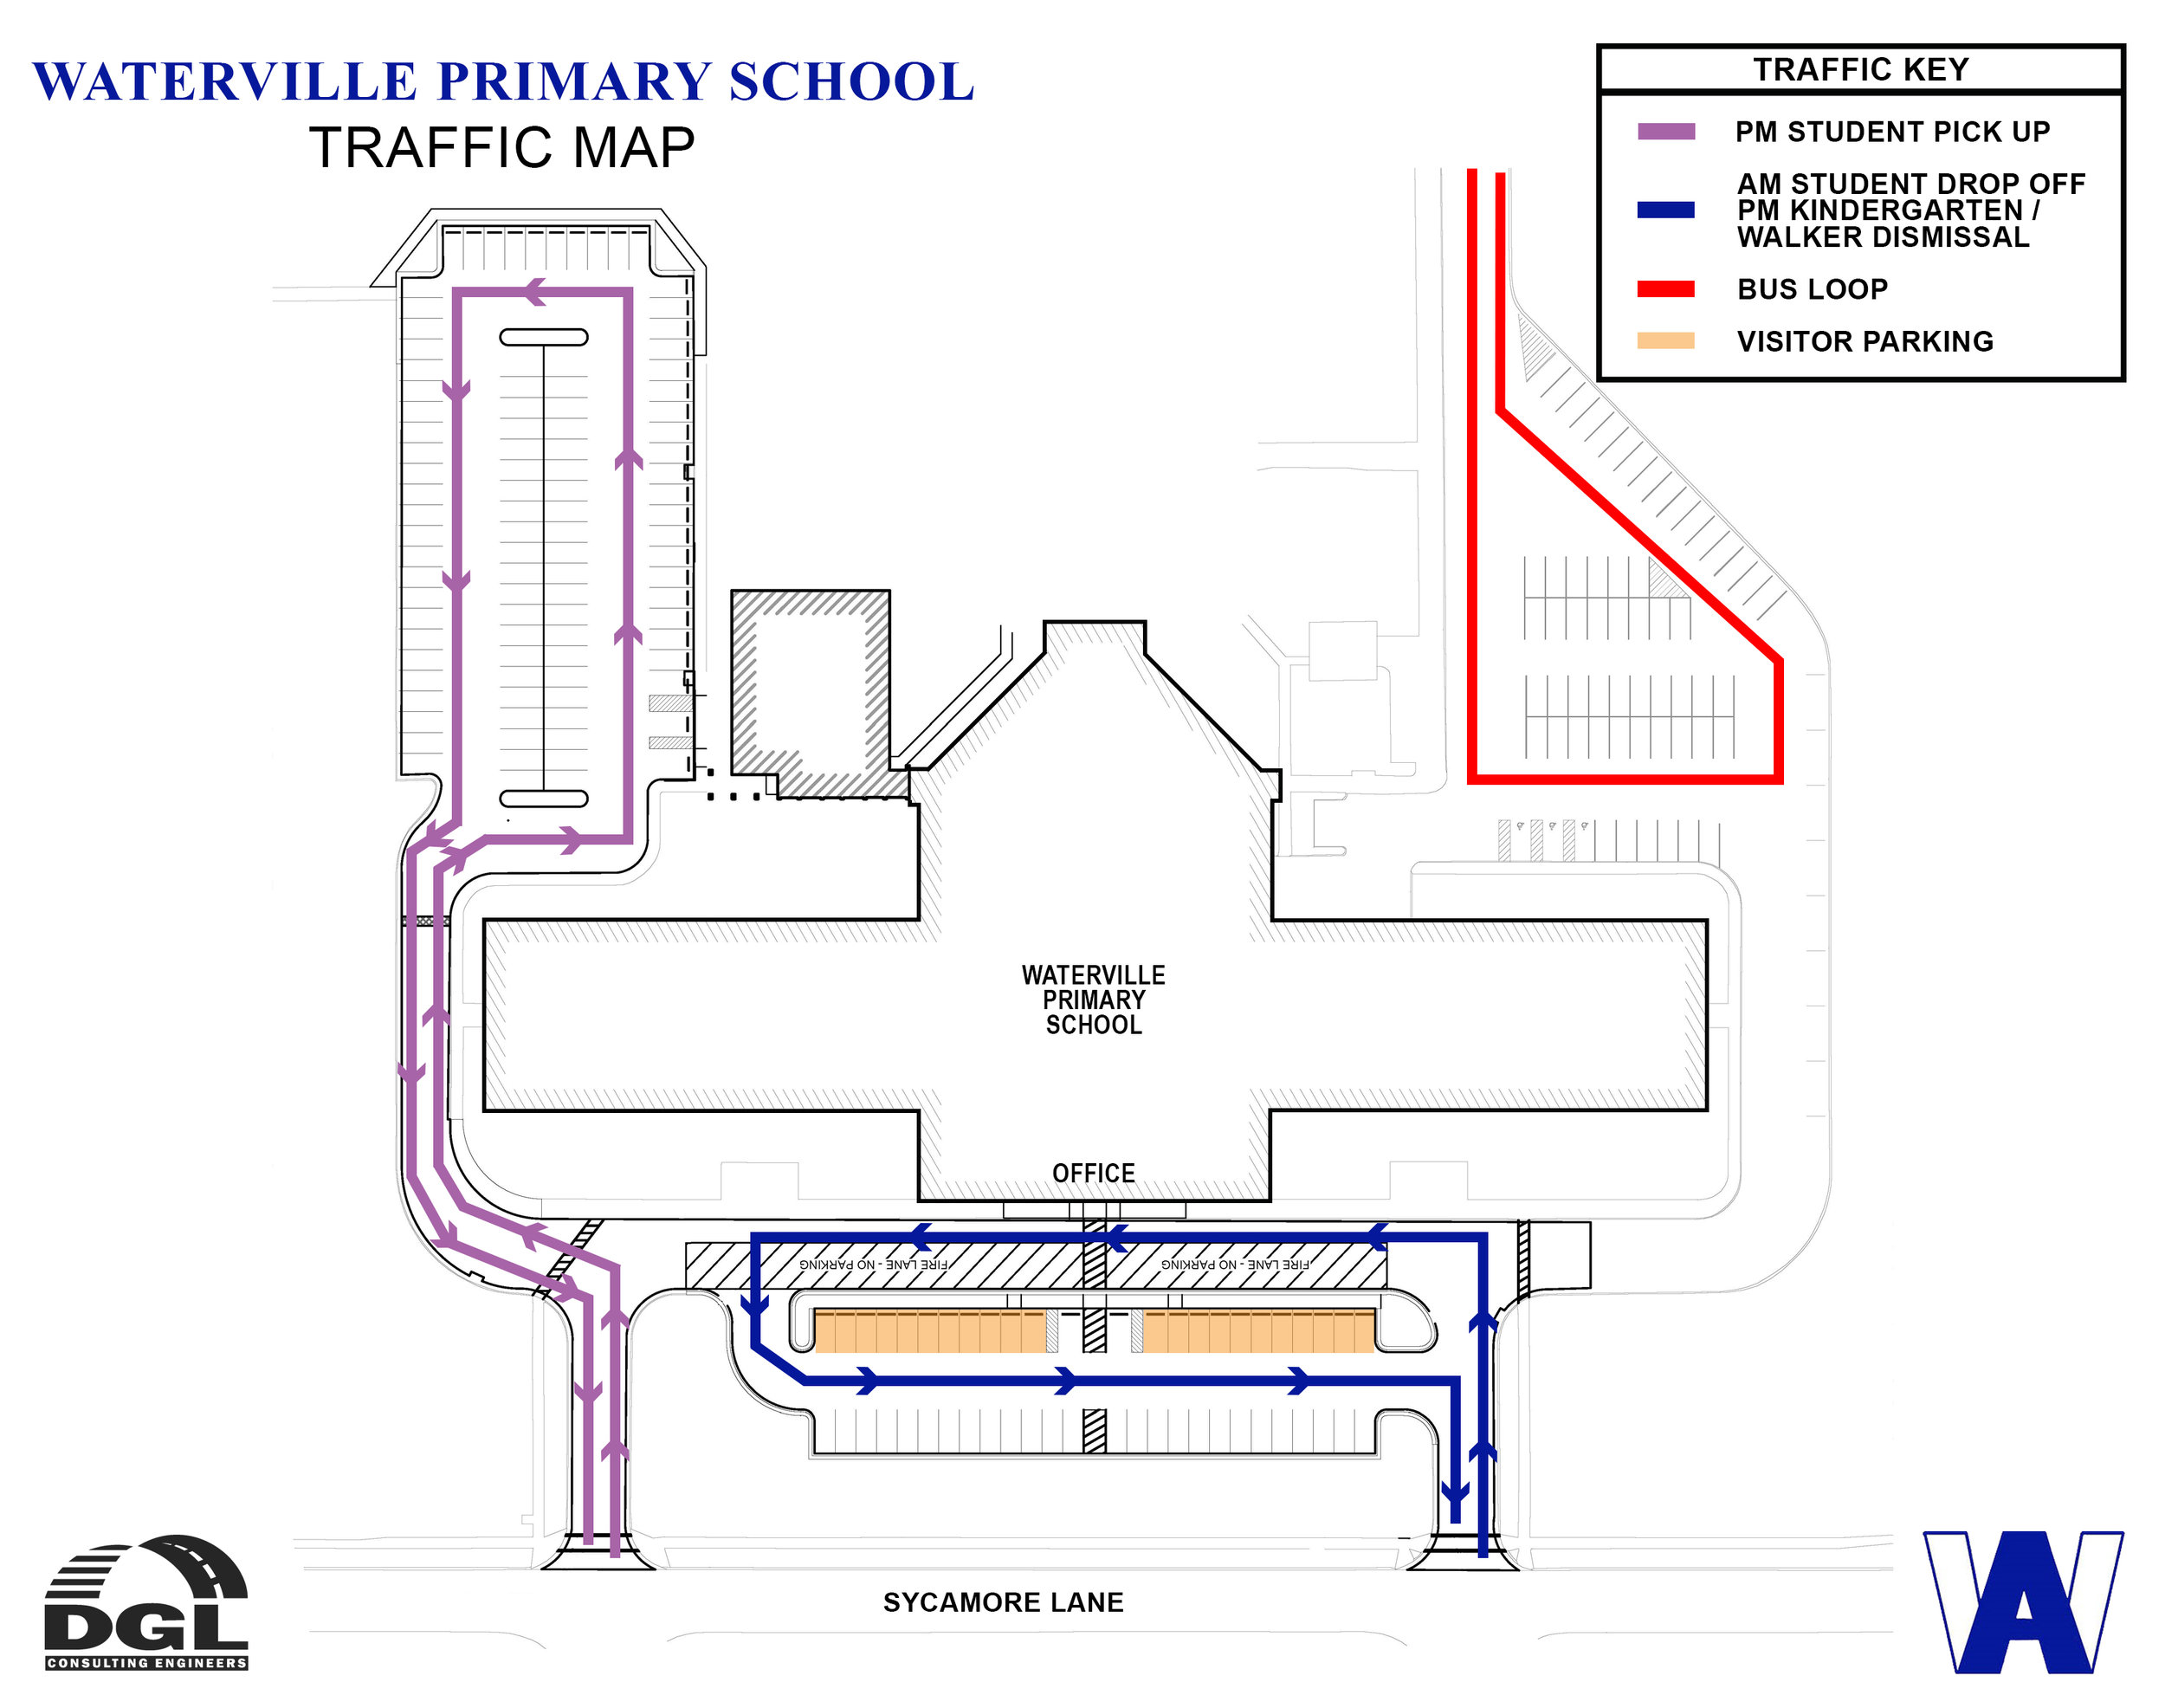 Waterville Primary School Traffic Map